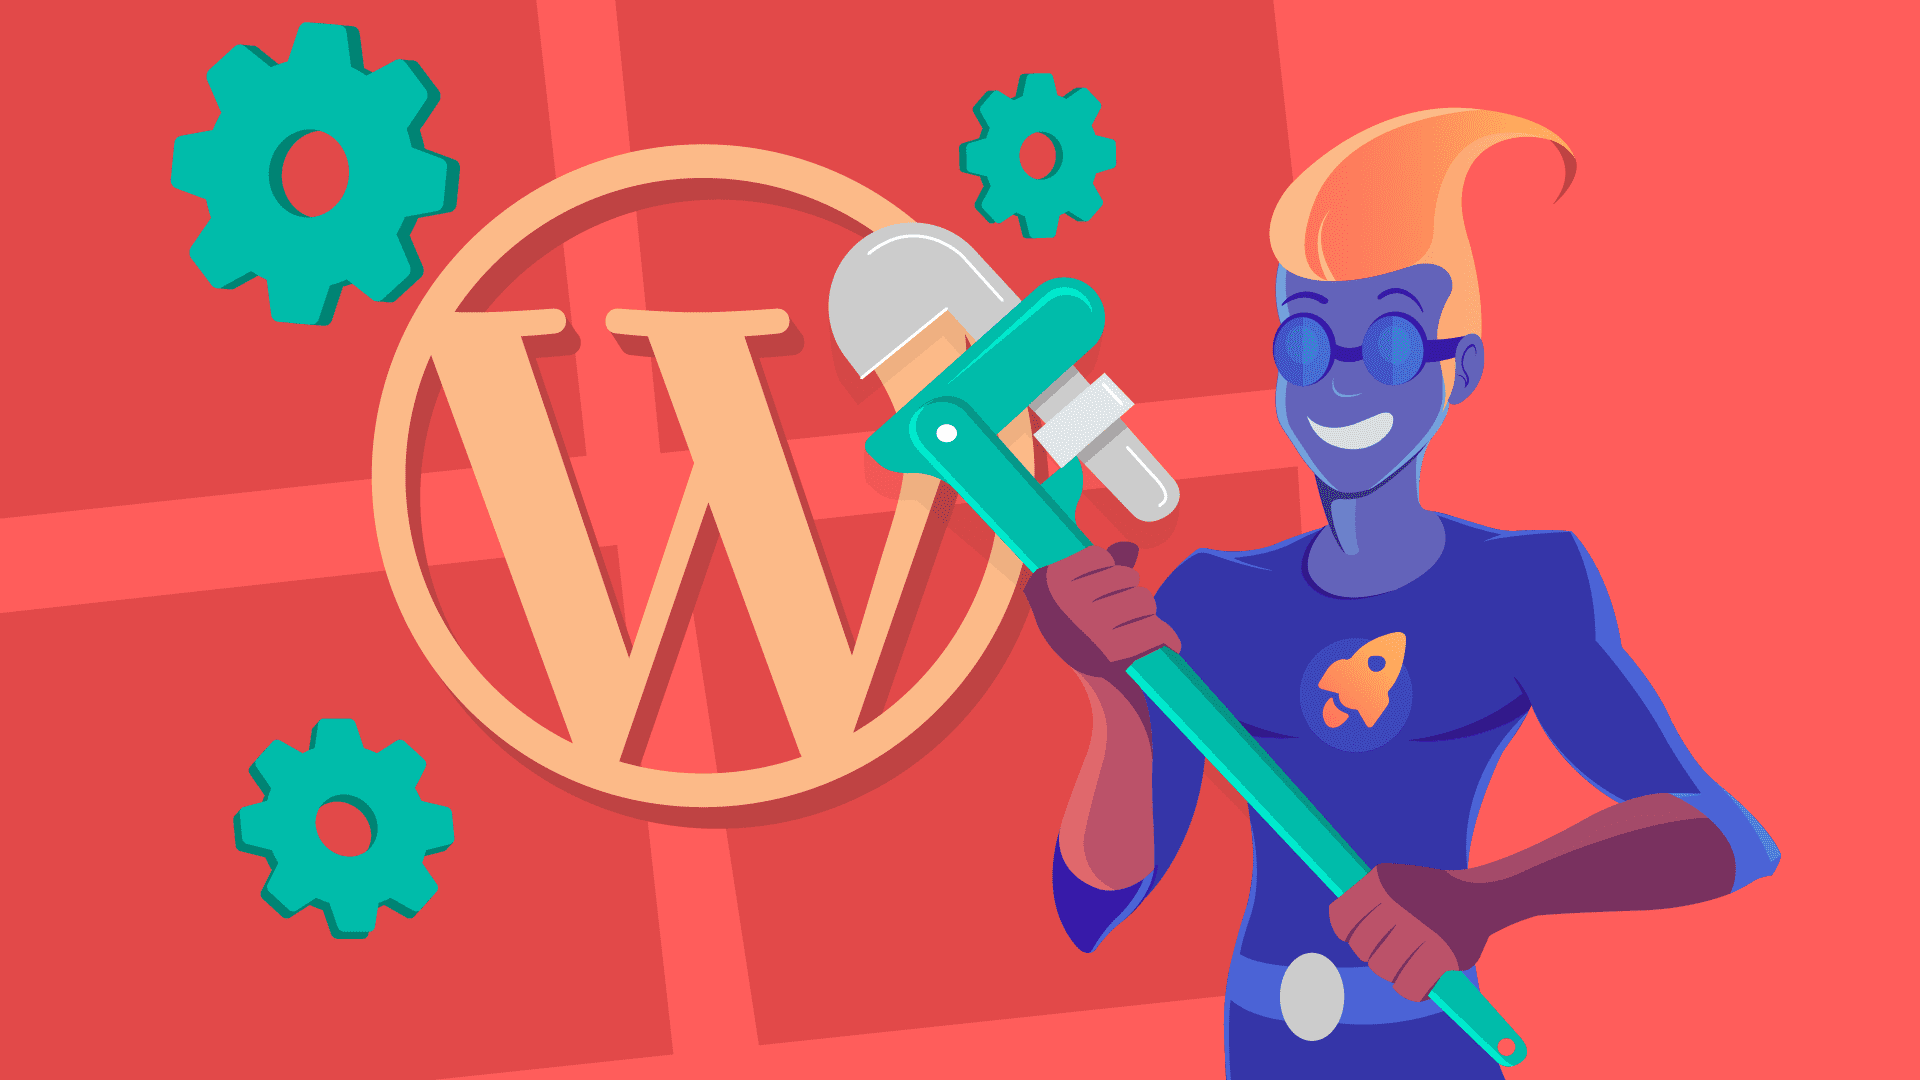 how-to-install-a-wordpress-plugin-step-by-step-guide-for-beginners How to Install a WordPress Plugin (Step by Step Guide for Beginners)